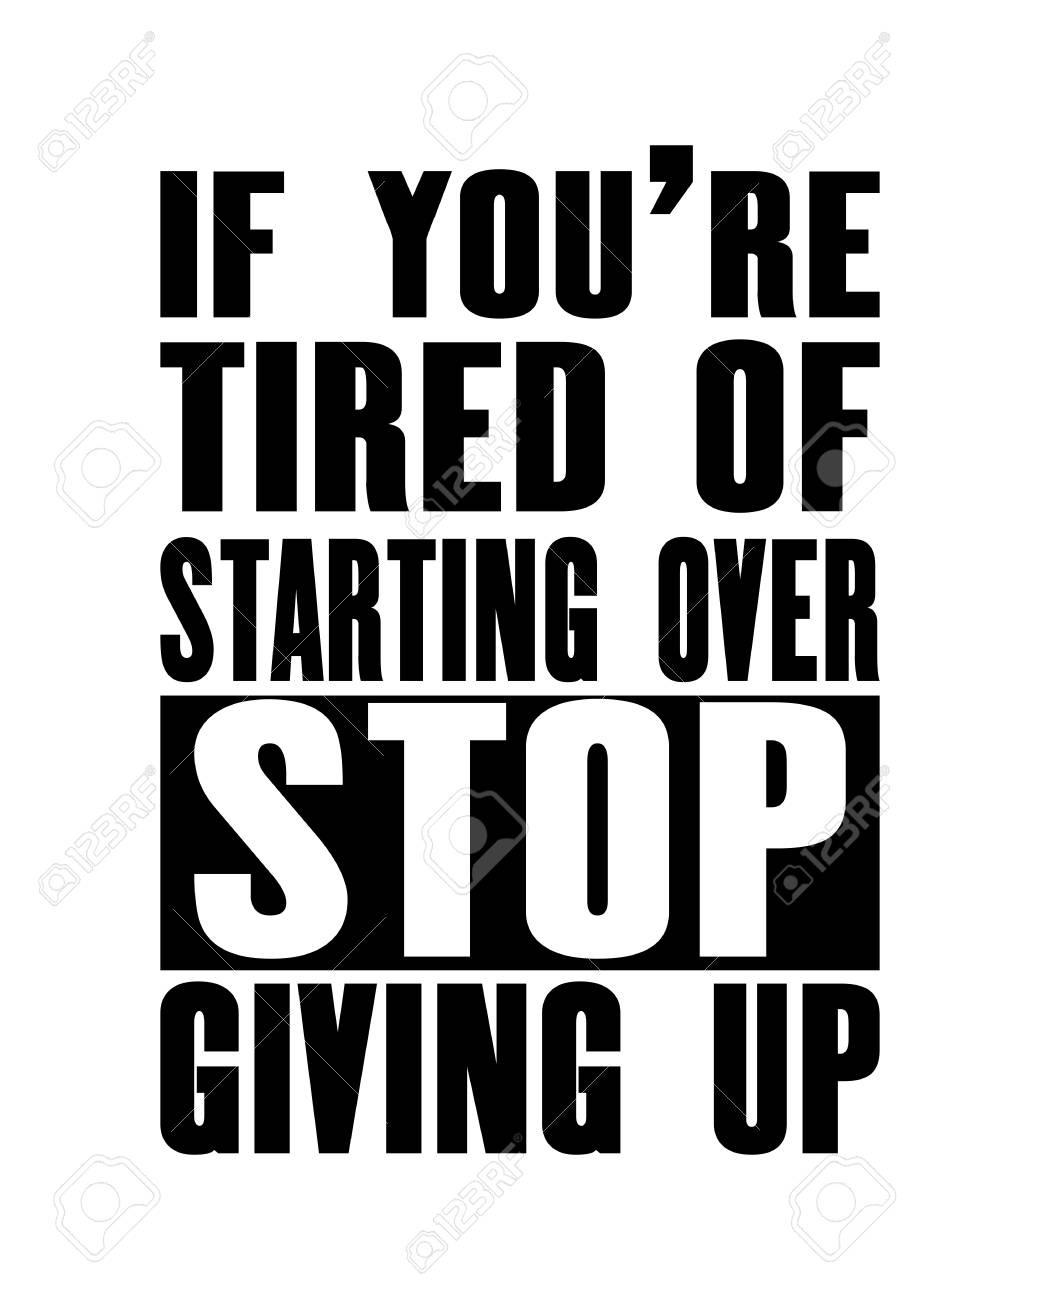 [image] Keep on going!!!!